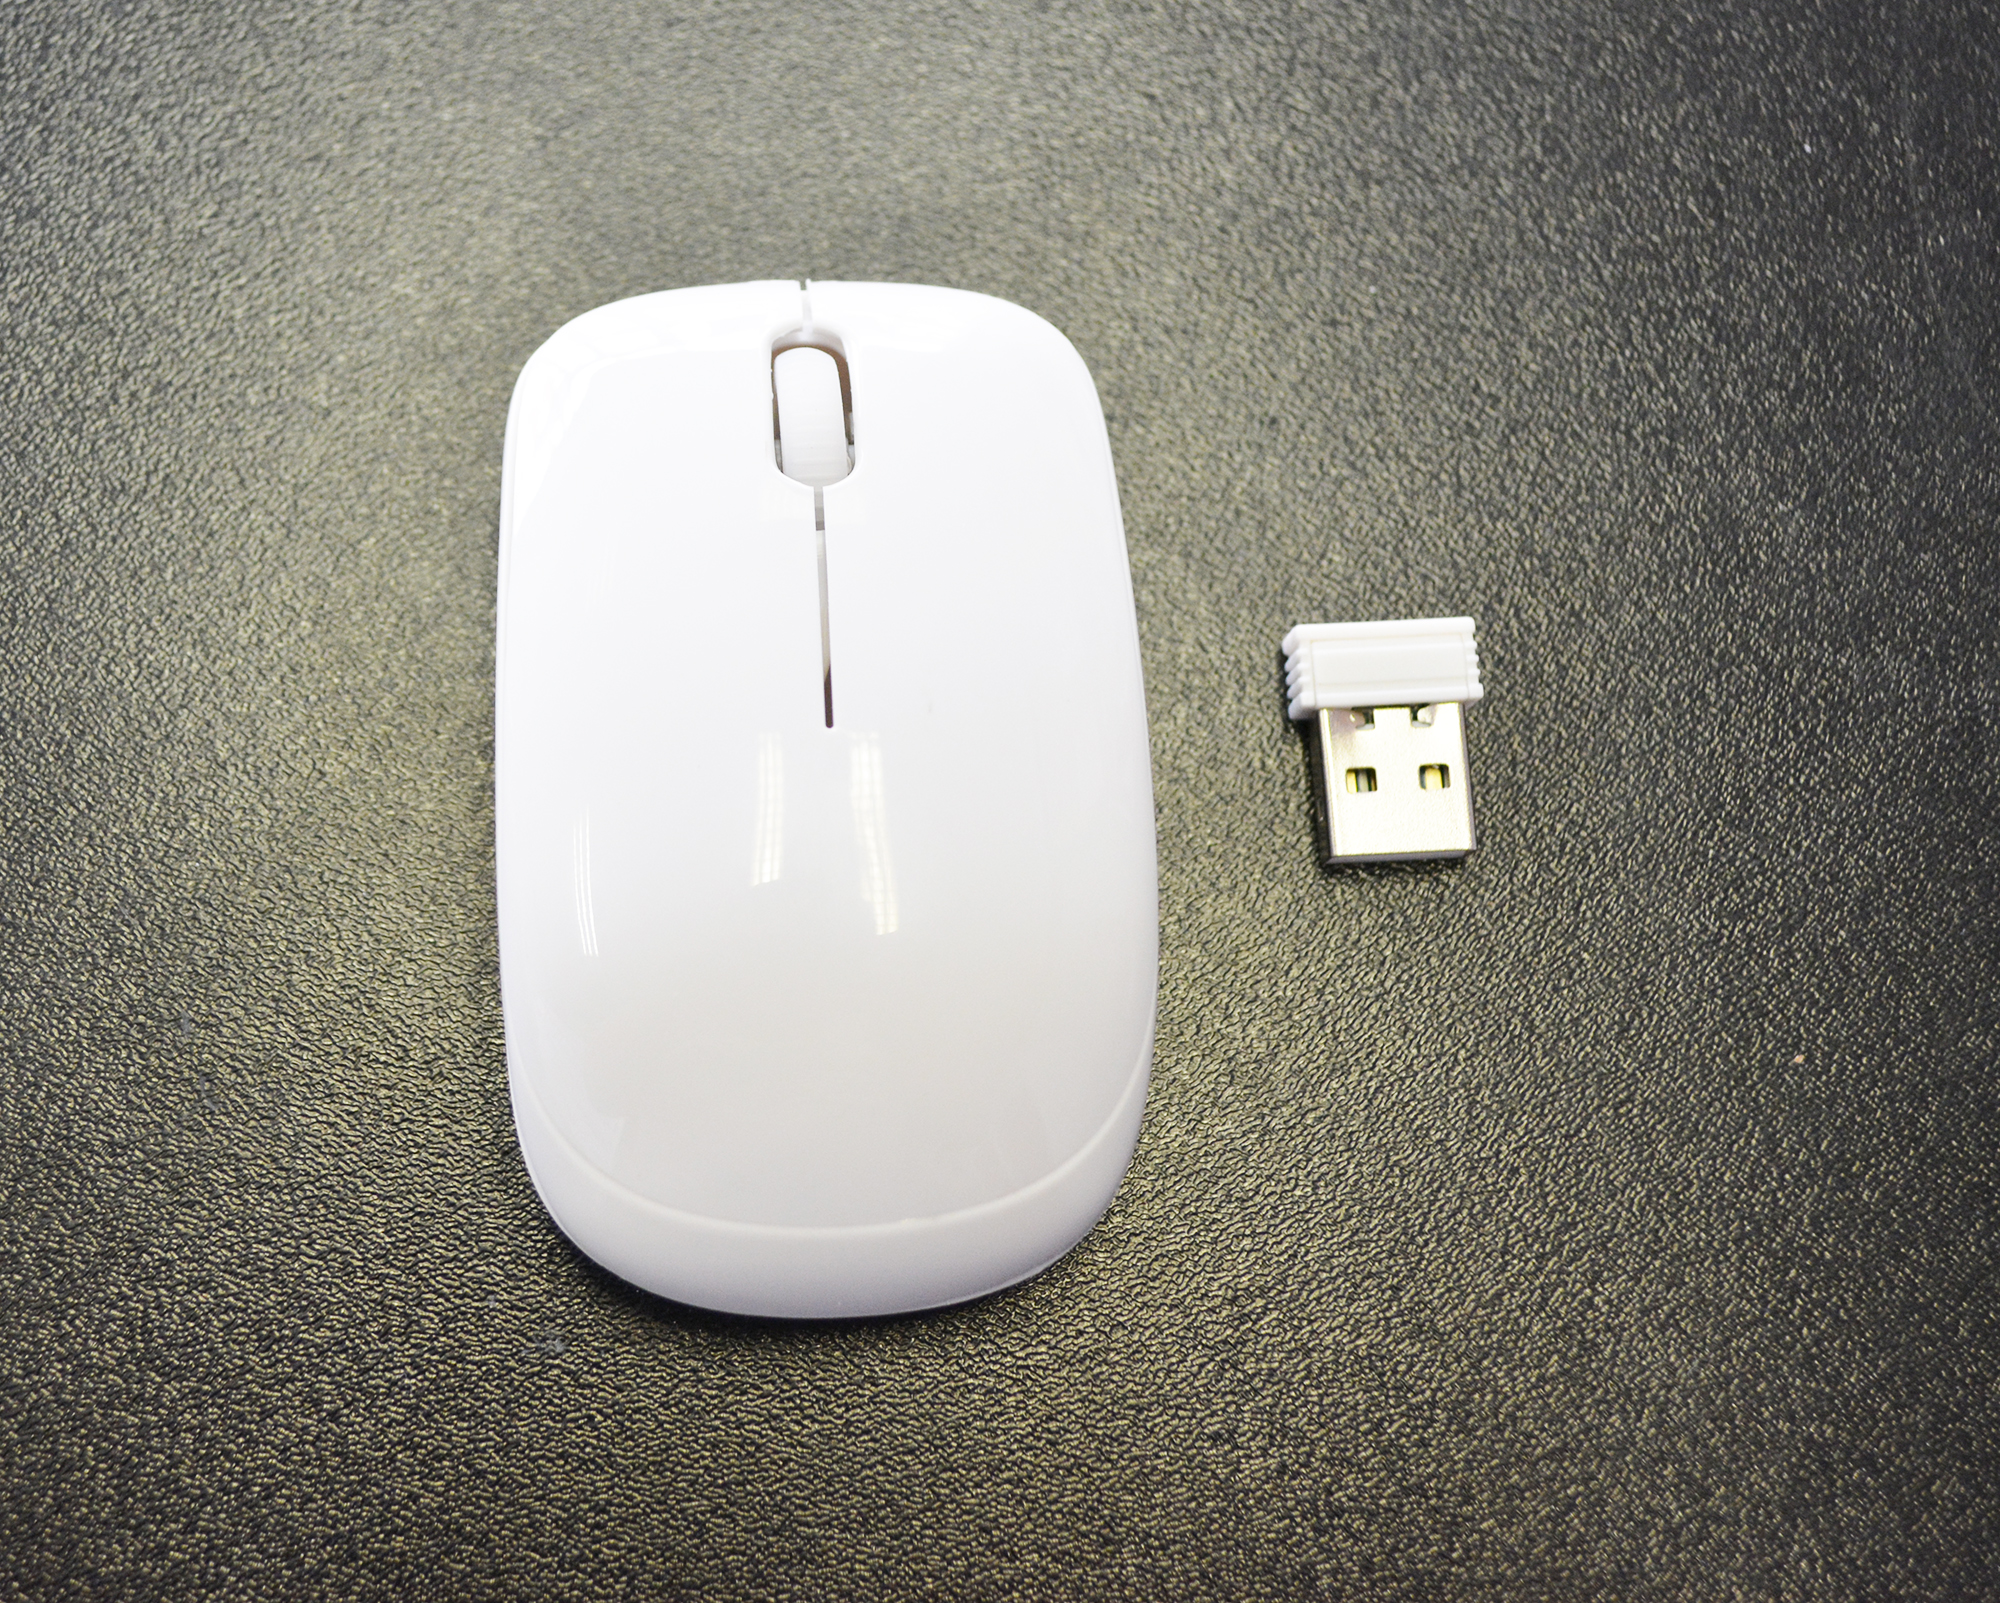 how to connect wireless mouse to samsung smart tv